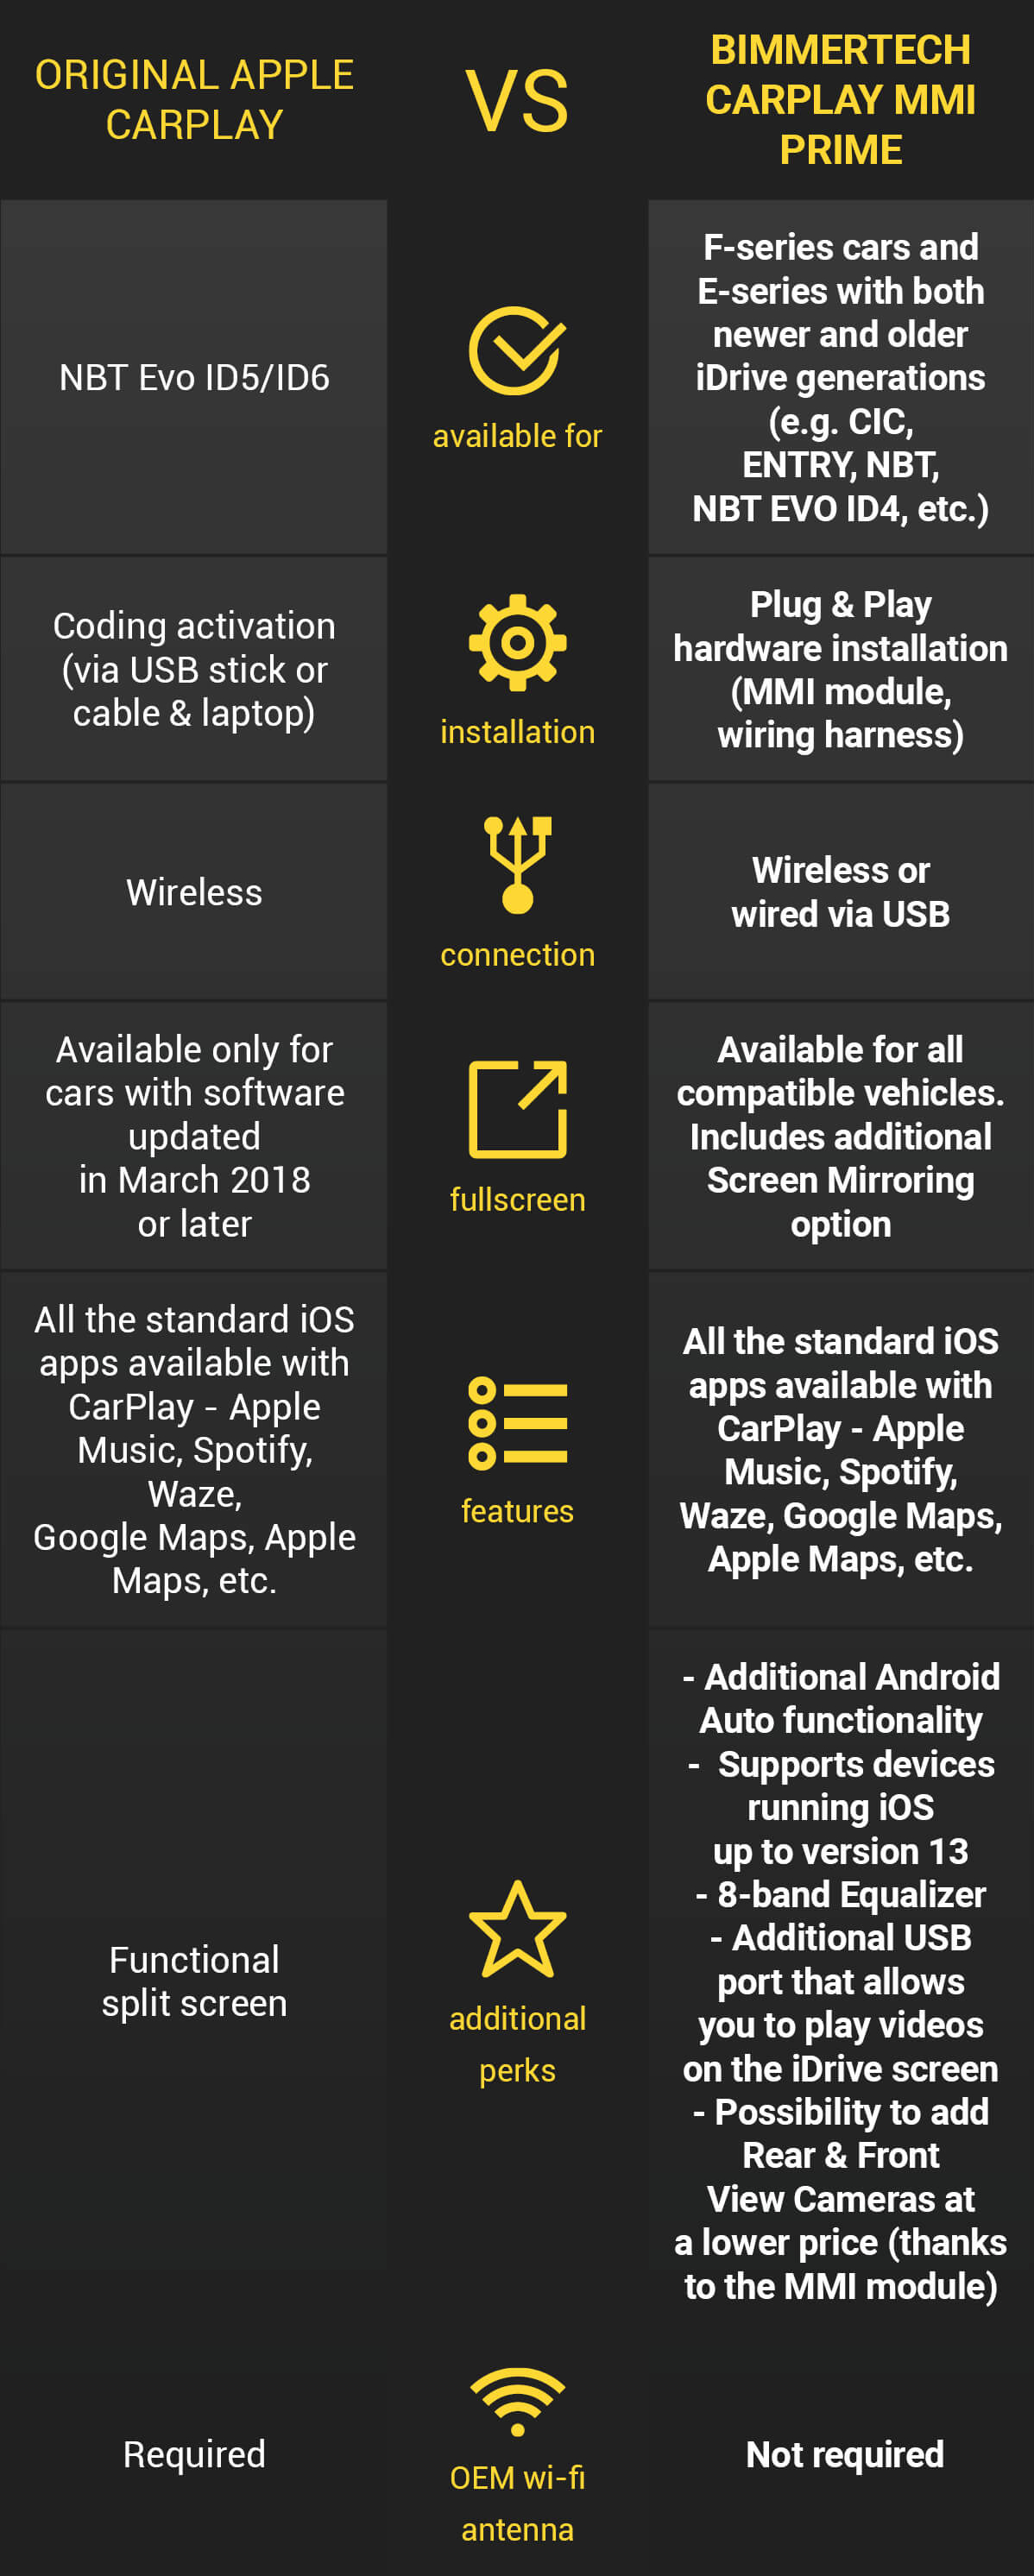 apple carplay vs. bimmertech carplay mmi prime